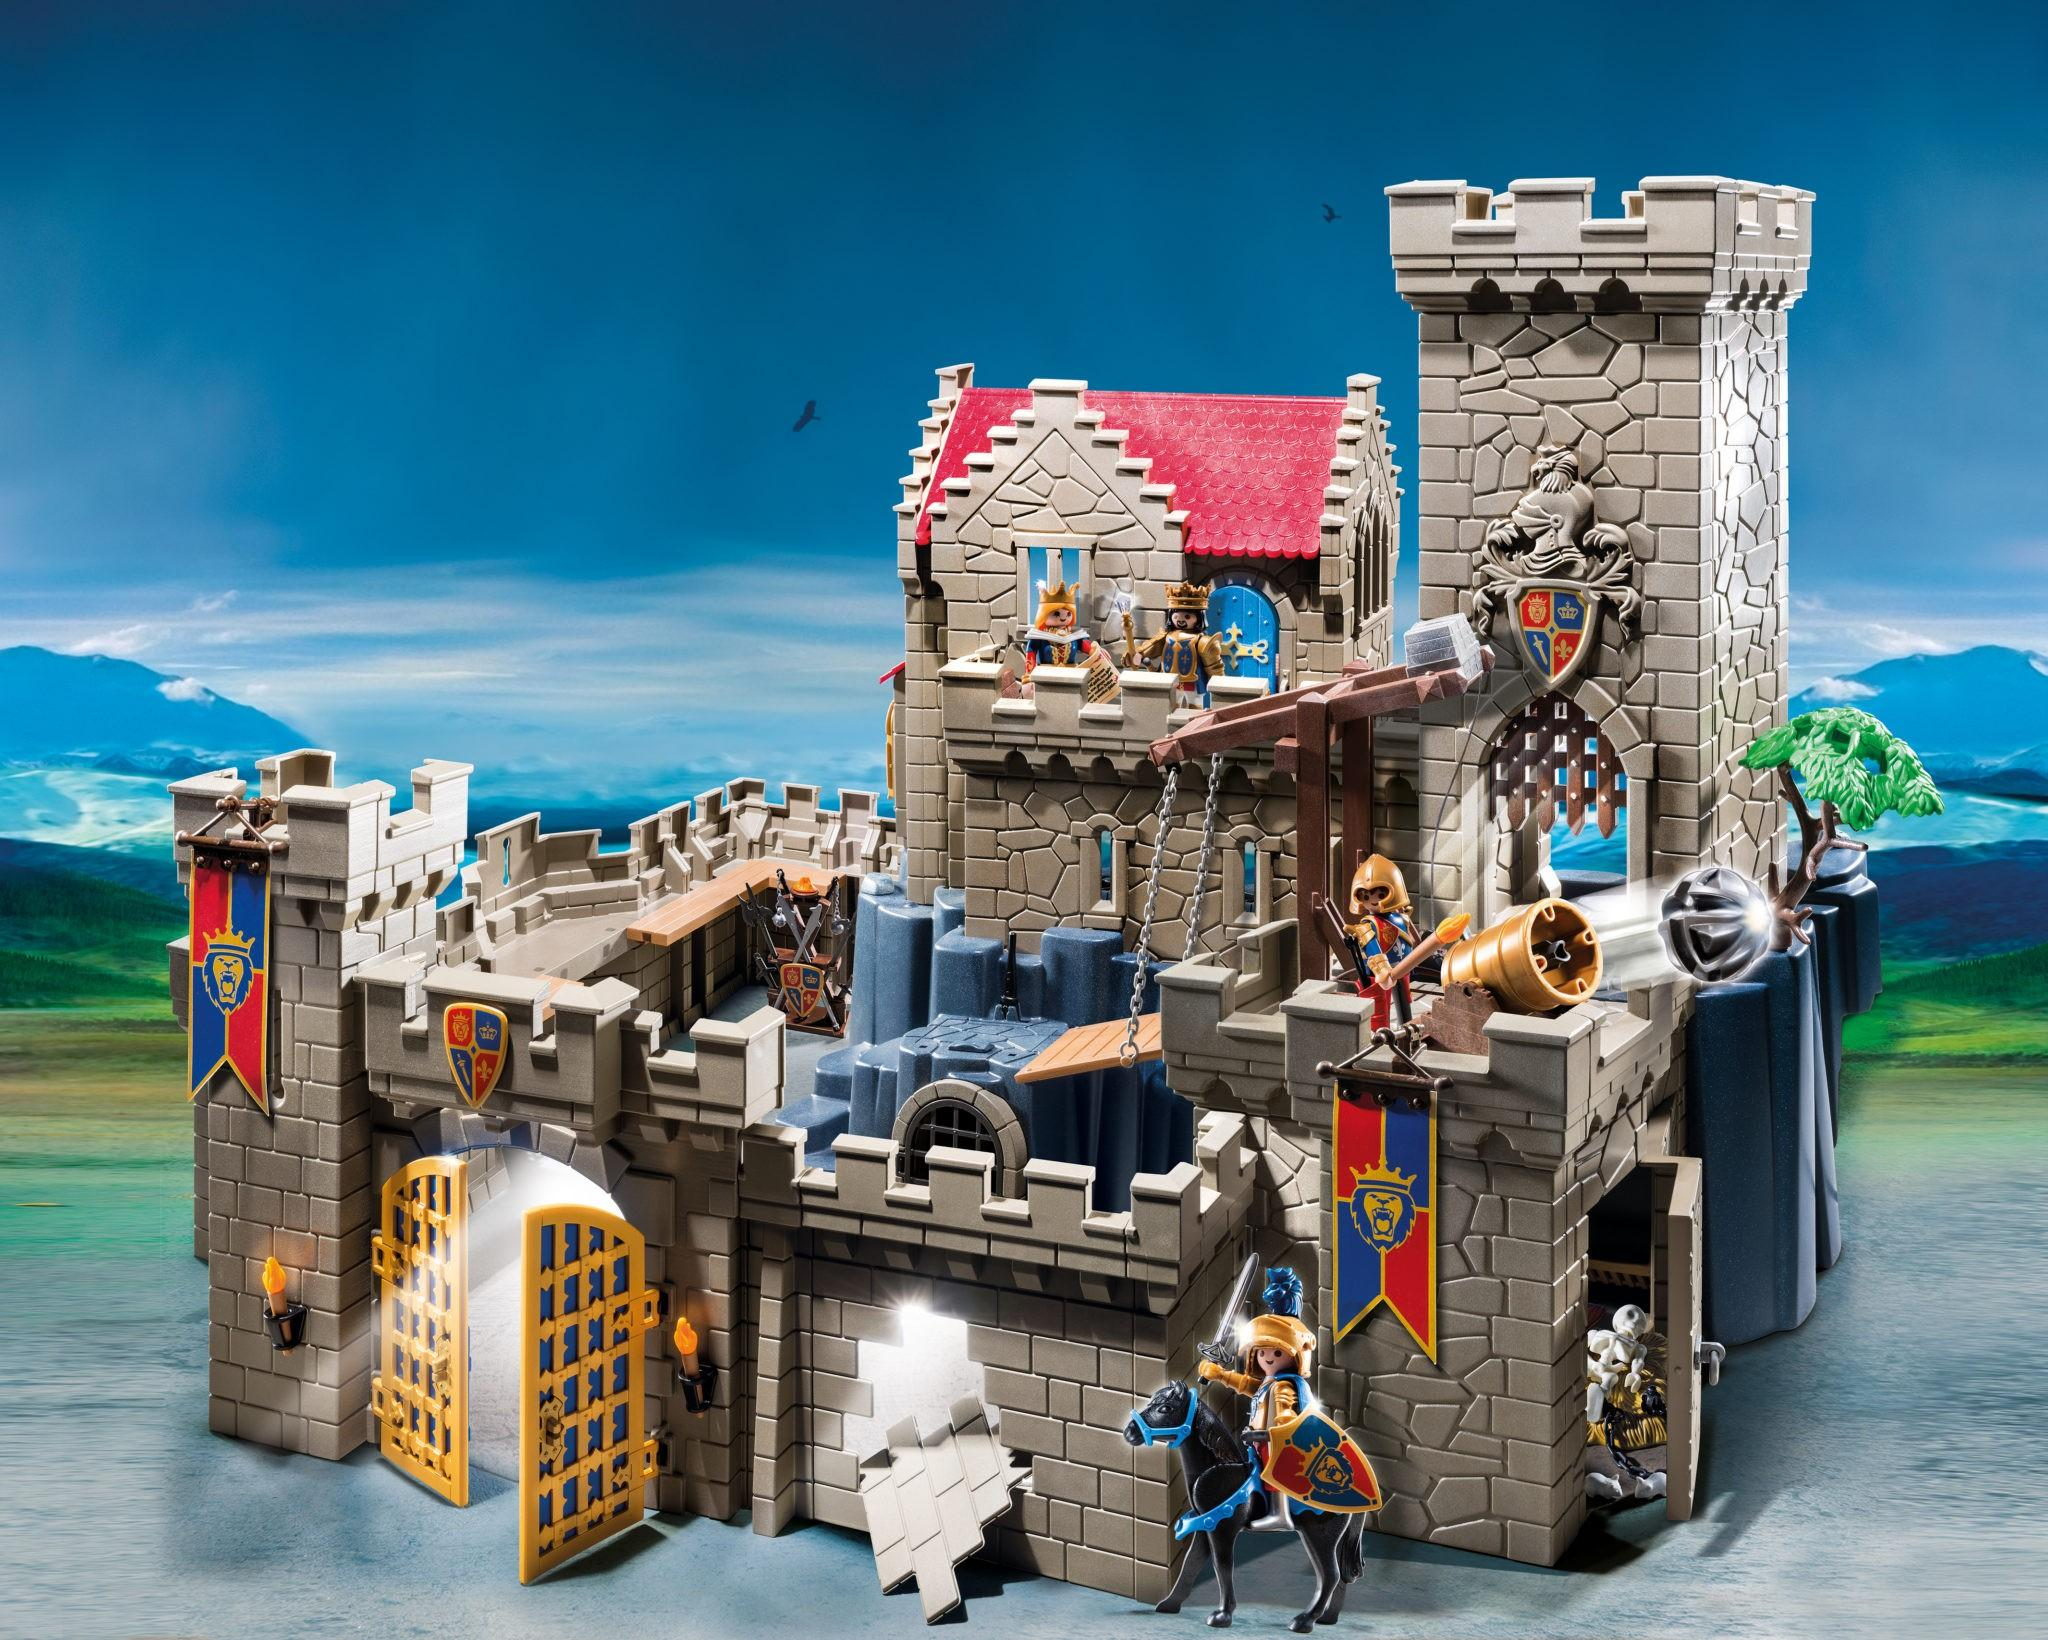 Visit the Minnesota Renaissance Festival & See PLAYMOBIL's new playset! (+ a giveaway!)